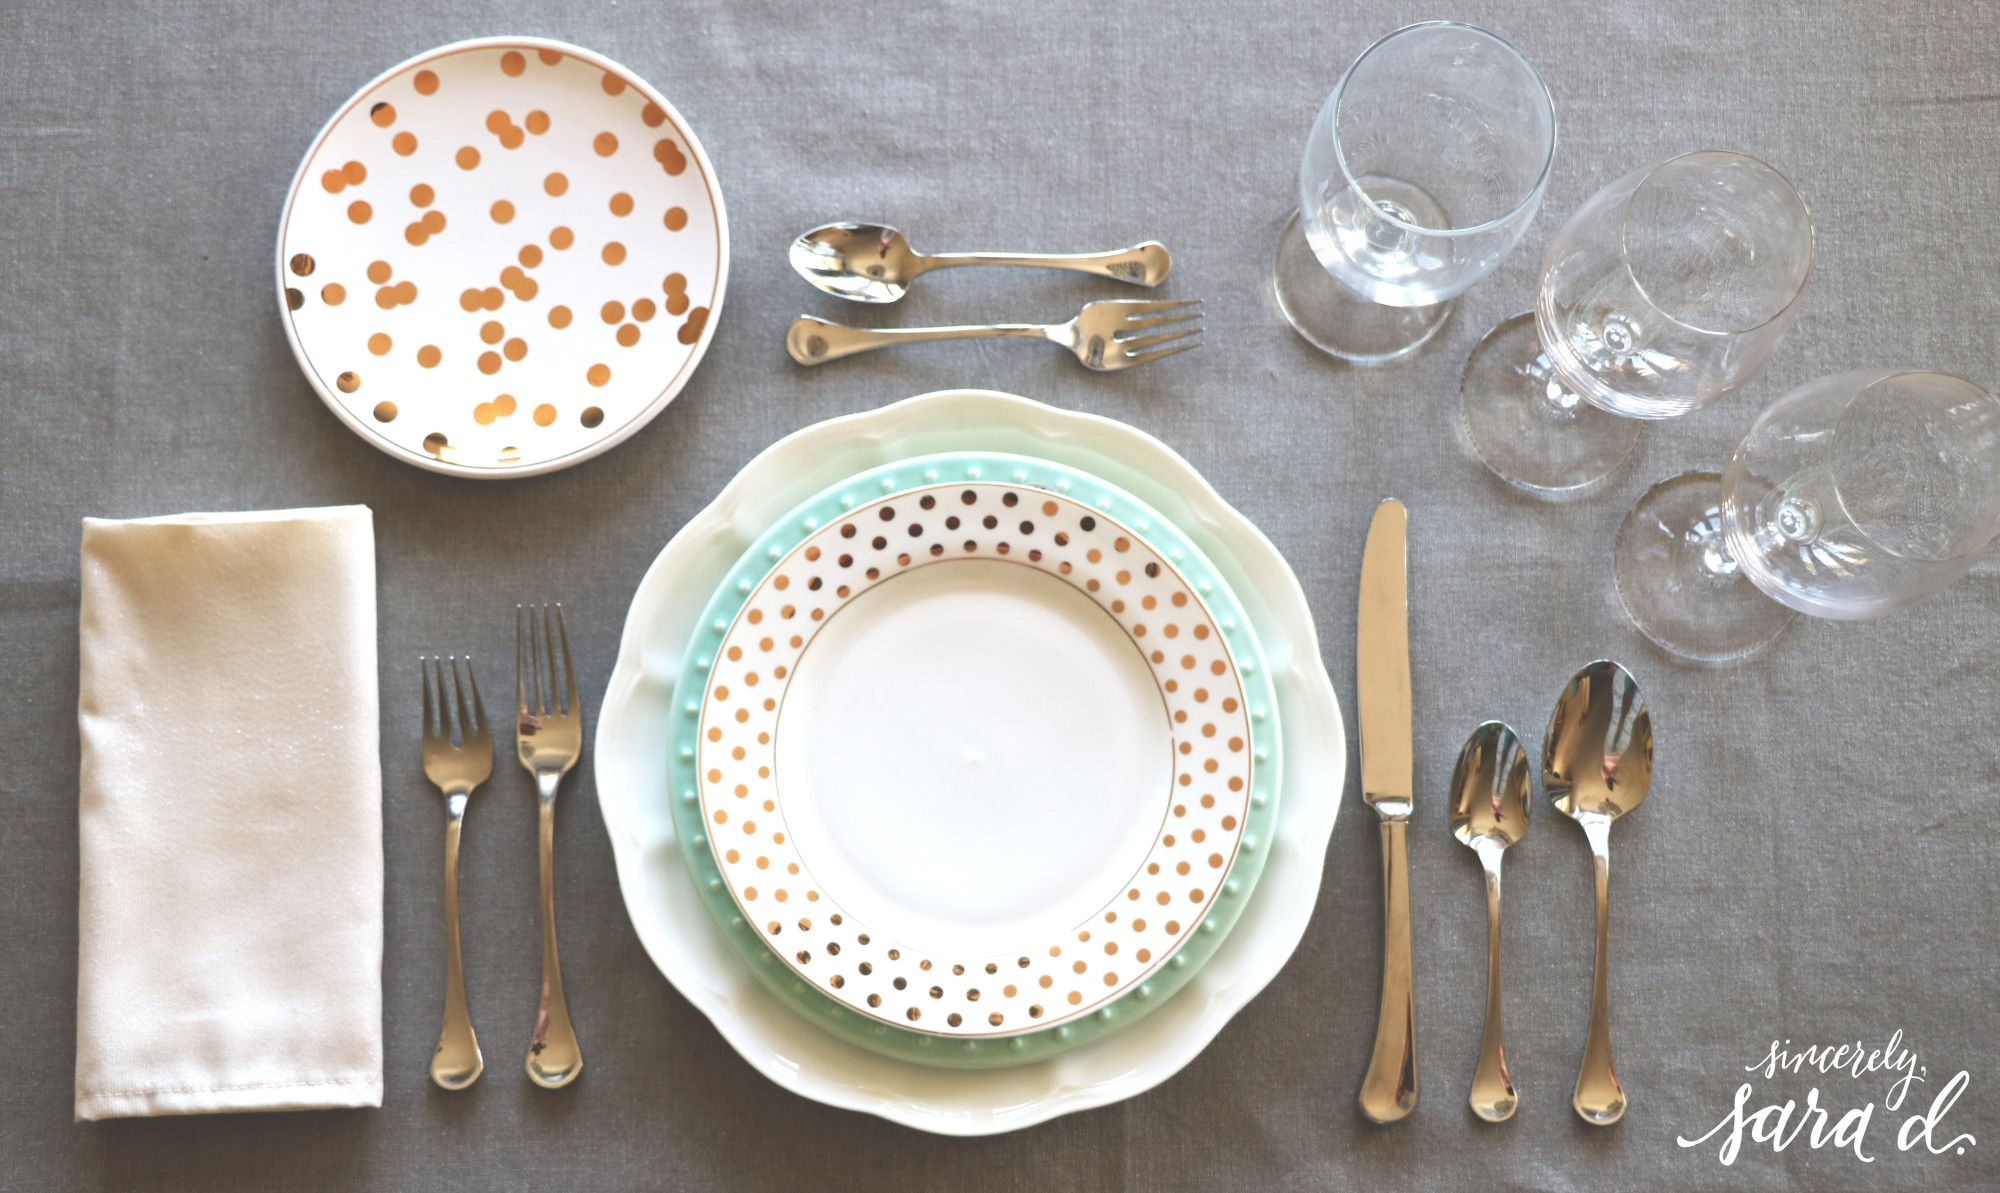 How to set a table | Table setting etiquette, Table settings and ...